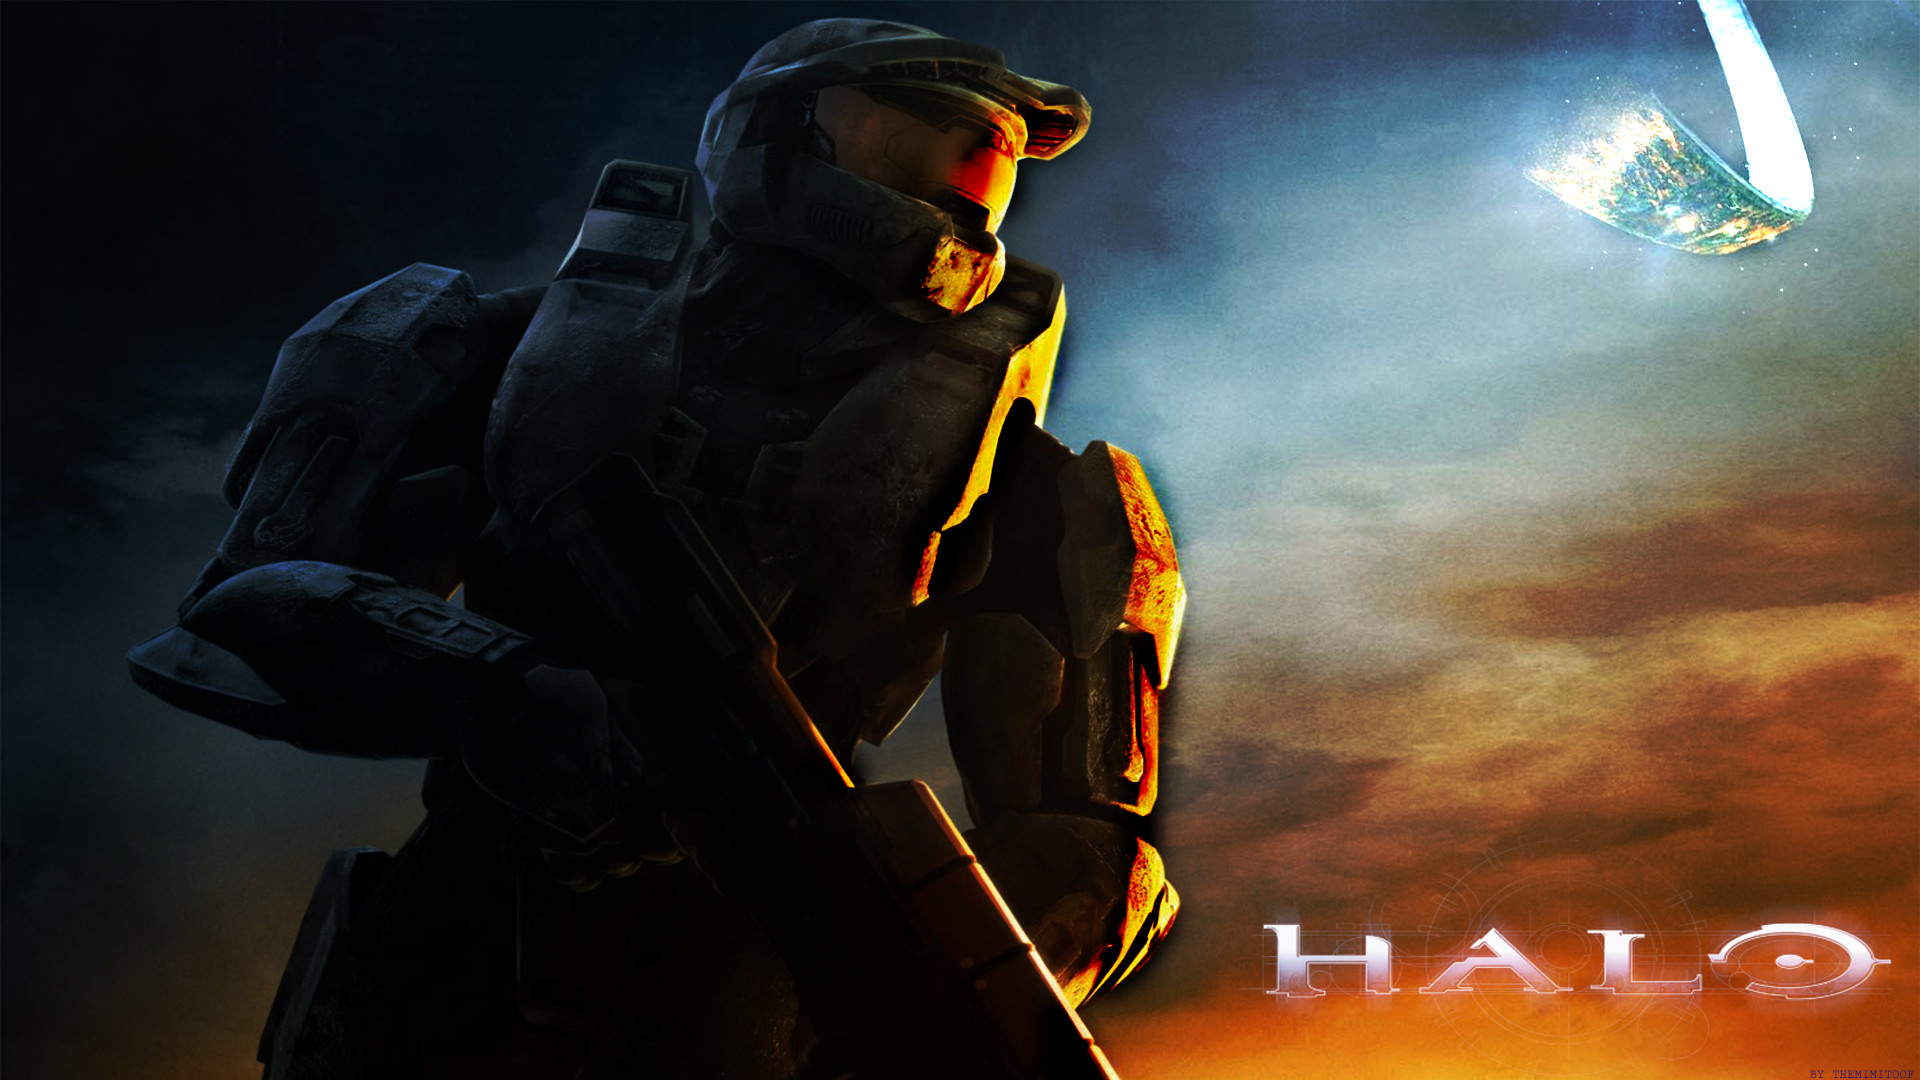 Halo 3 Wallpaper Hd 69 Pictures